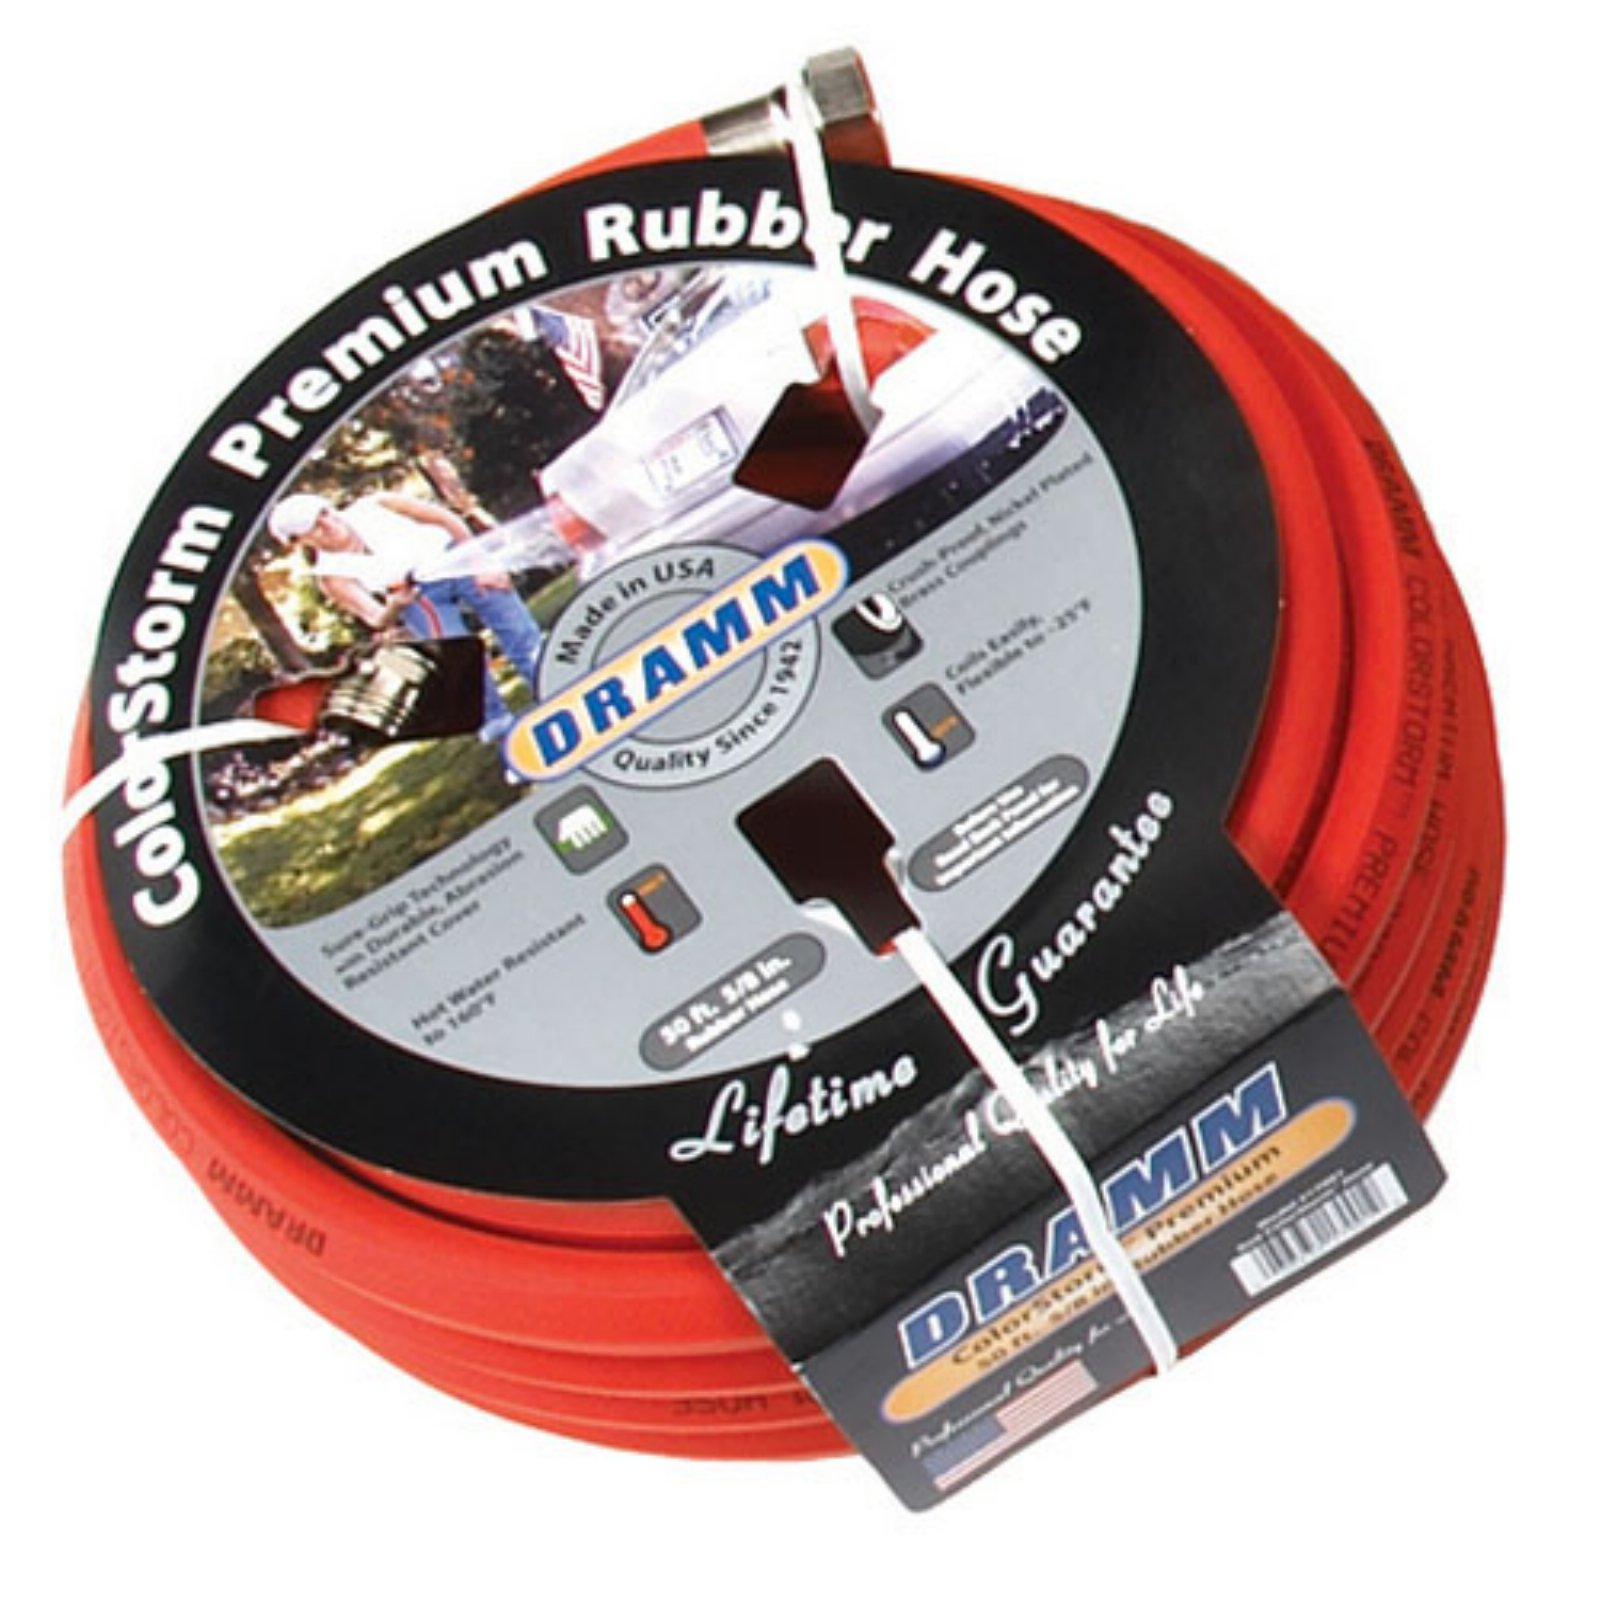 Dramm ColorStorm 5/8 in. Premium Rubber Garden Hose - 50 ft.